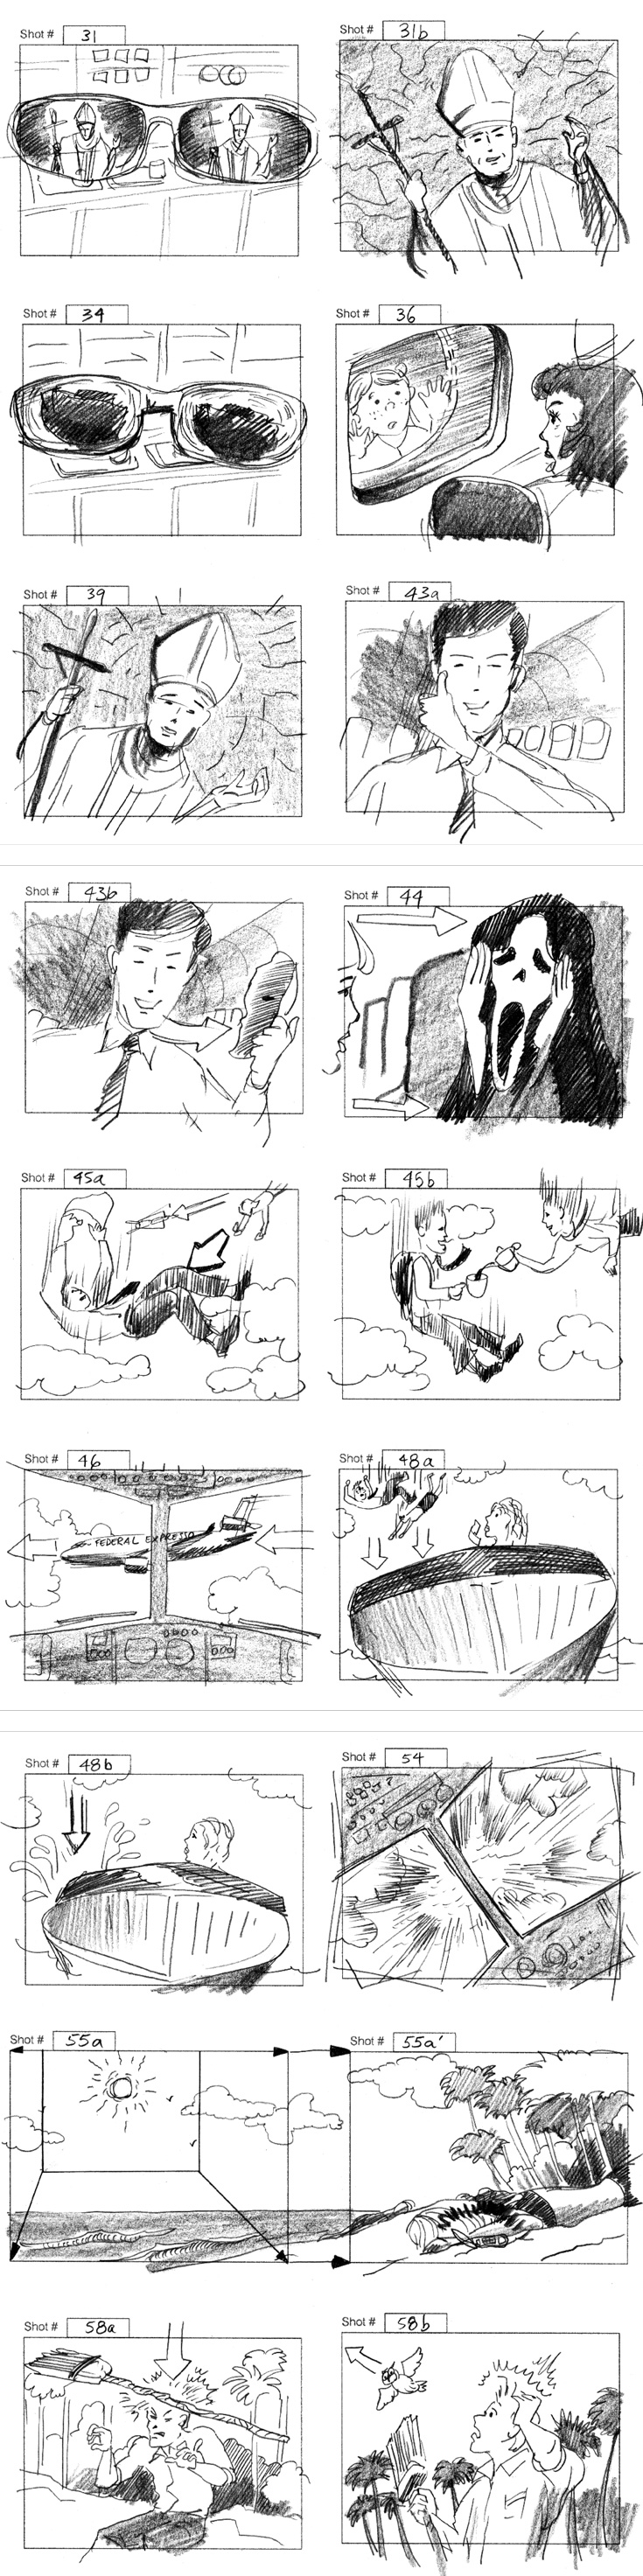 Miss Cast Away Storyboards By Storyboard Artist Cuong Huynh Got A